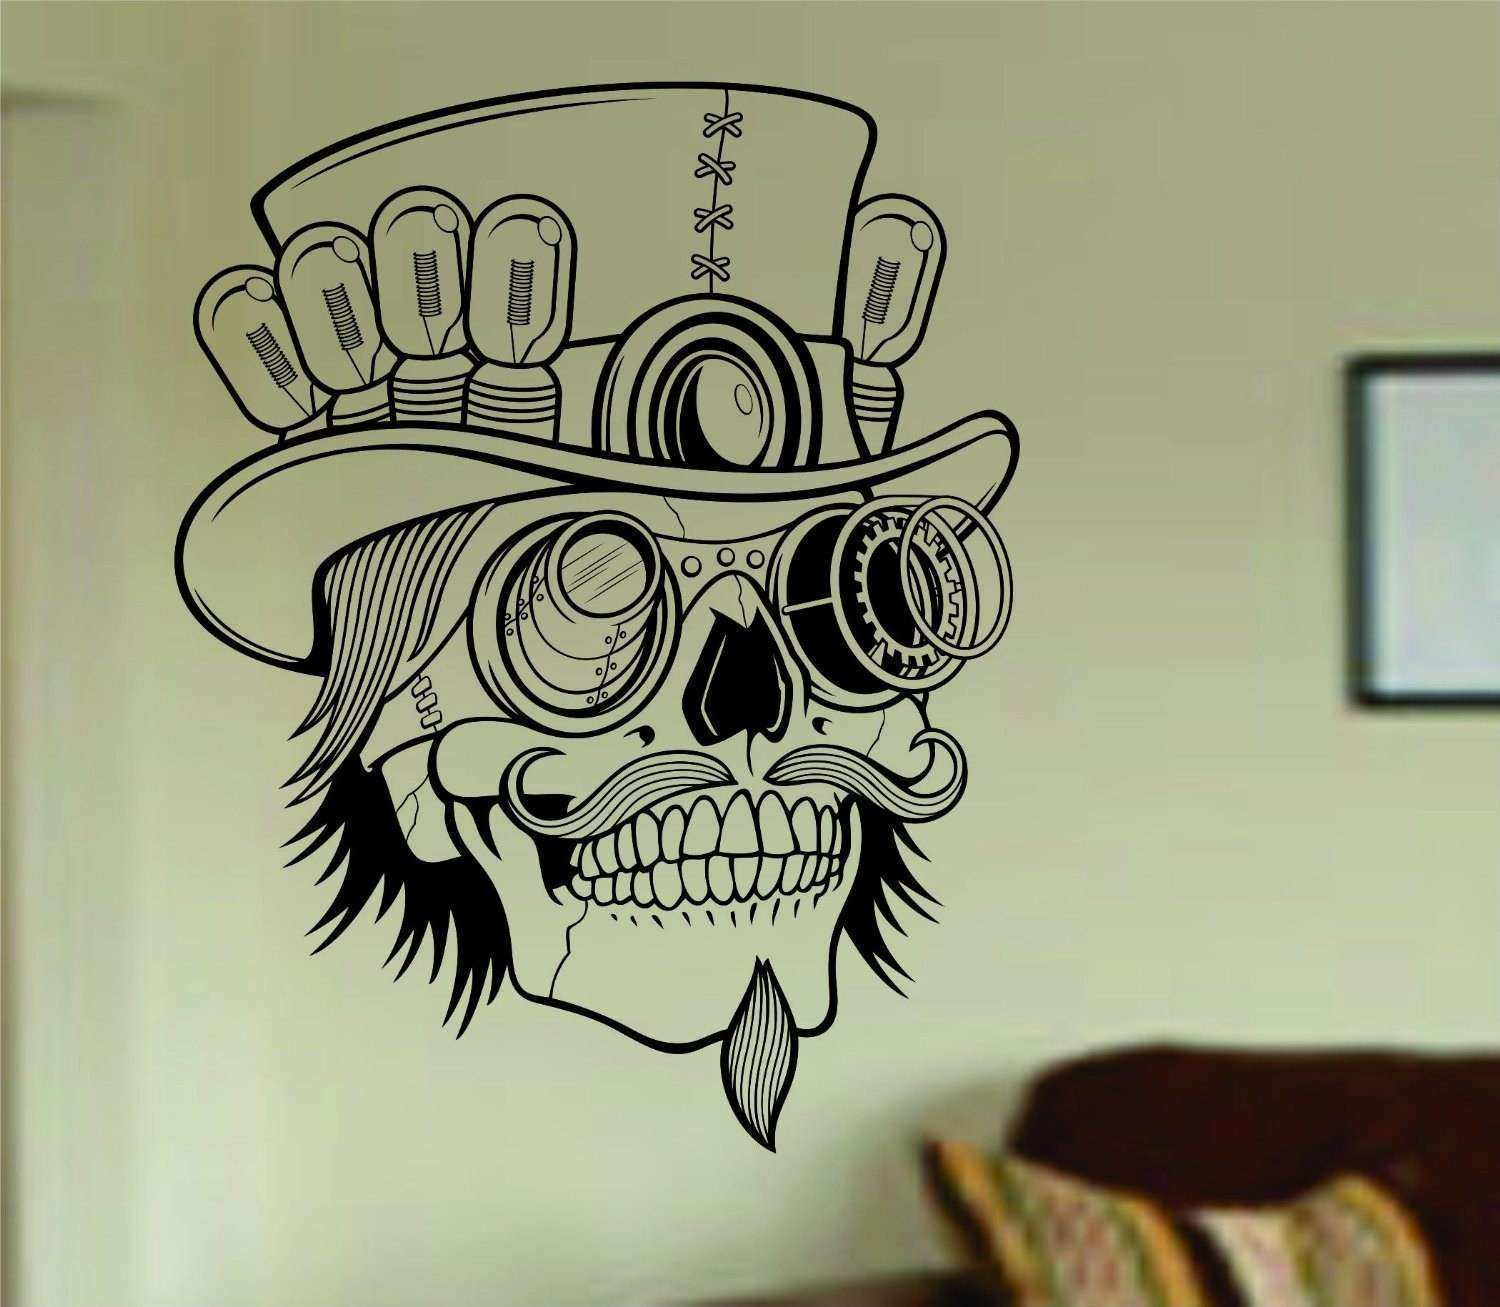 Steampunk Skull Wall Vinyl Decal Sticker Art Graphic Sticker